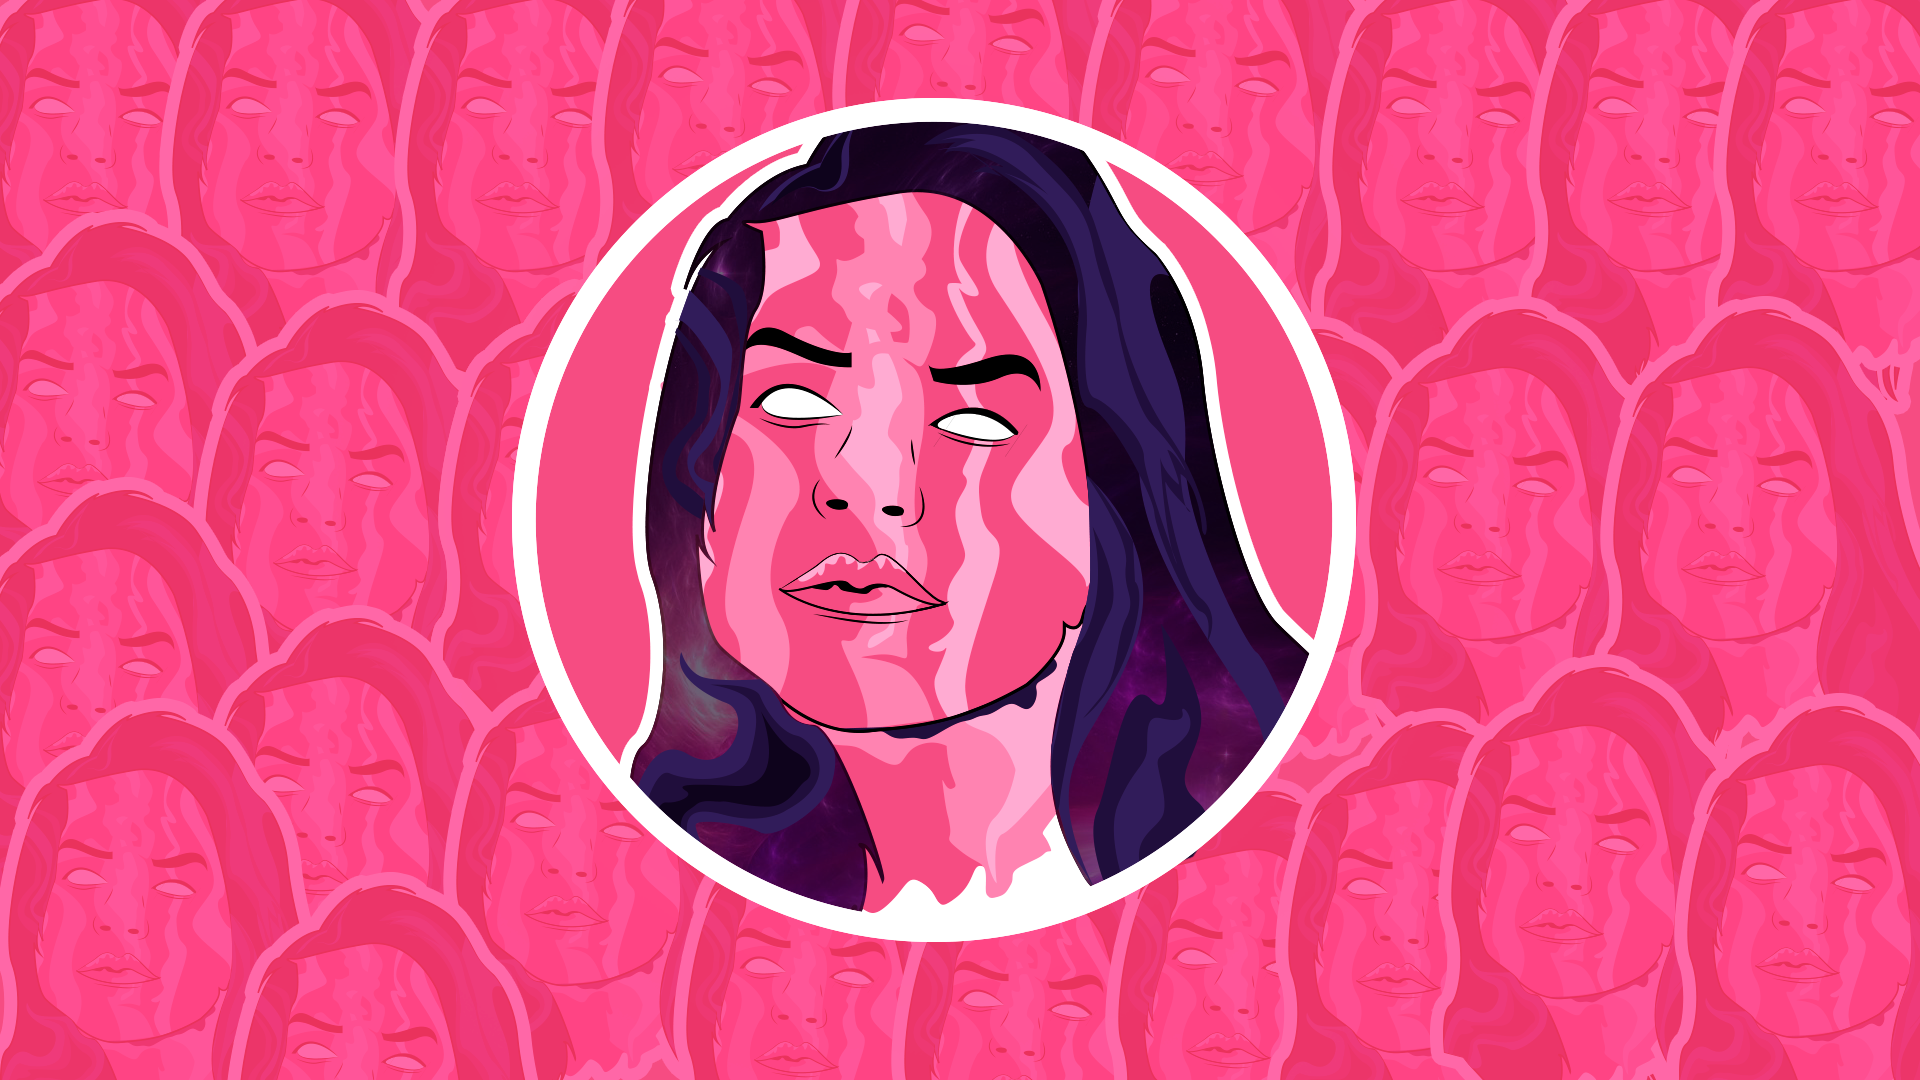 General 1920x1080 vector art pink face women